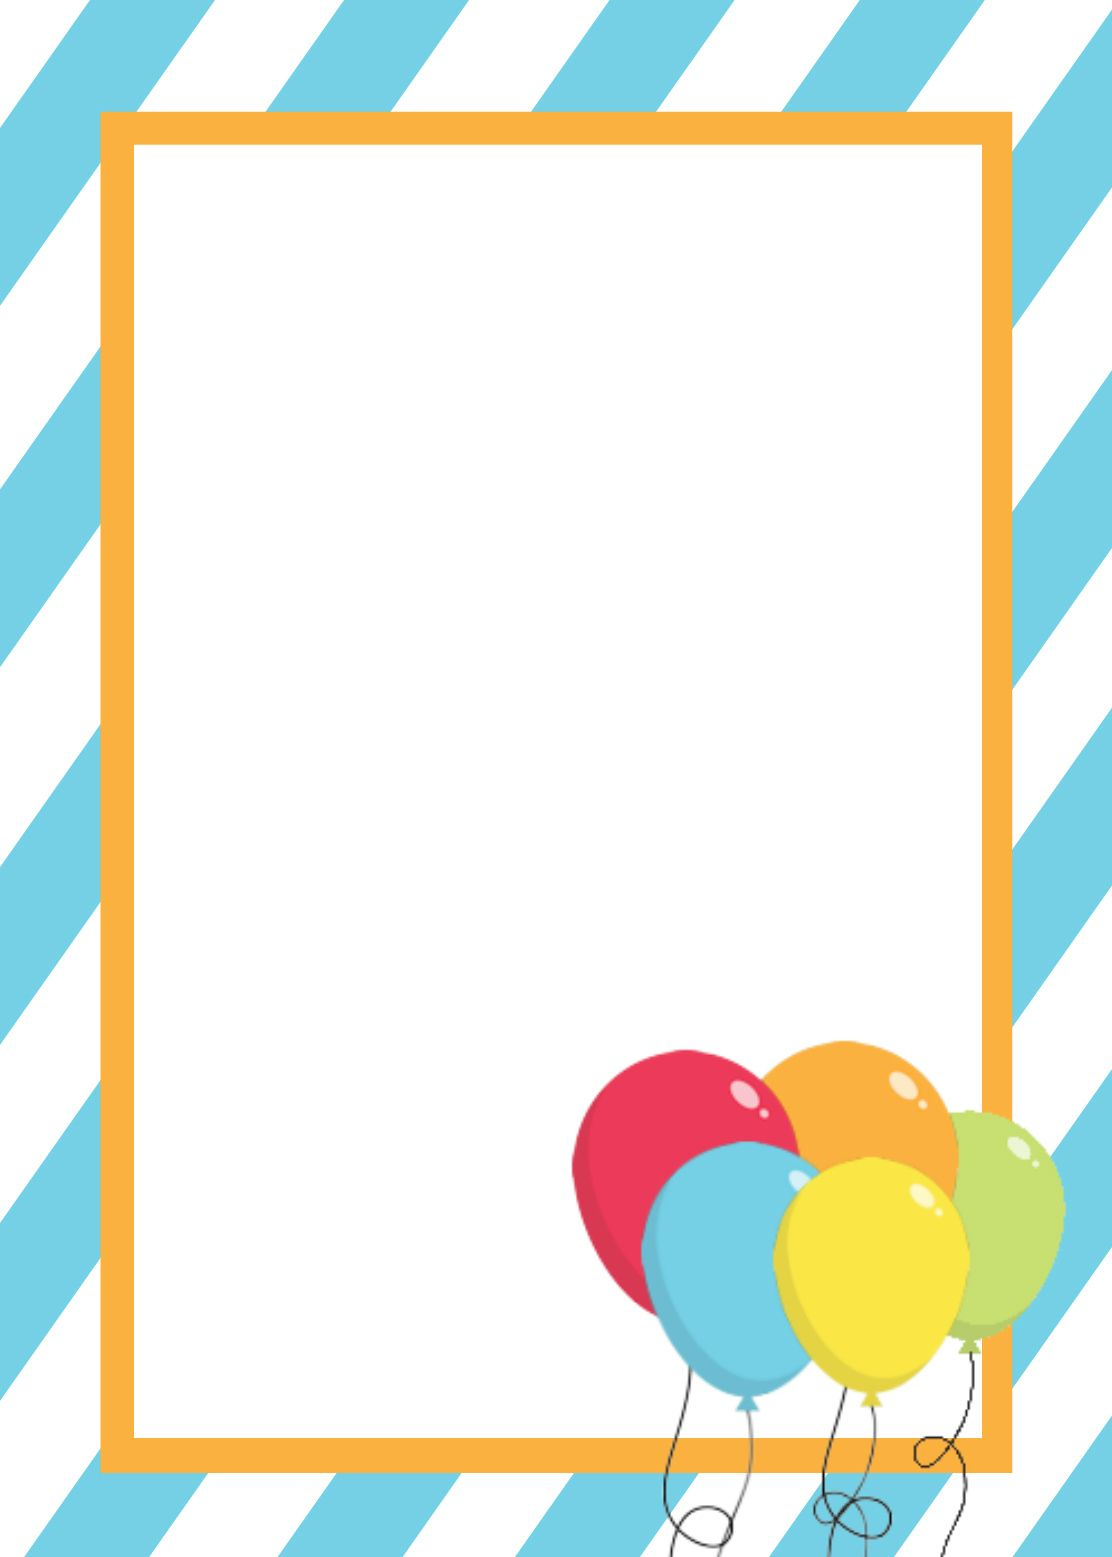 Free Printable Birthday Invitation Templates | Birthday Ideas And - Free Printable Birthday Invitation Cards